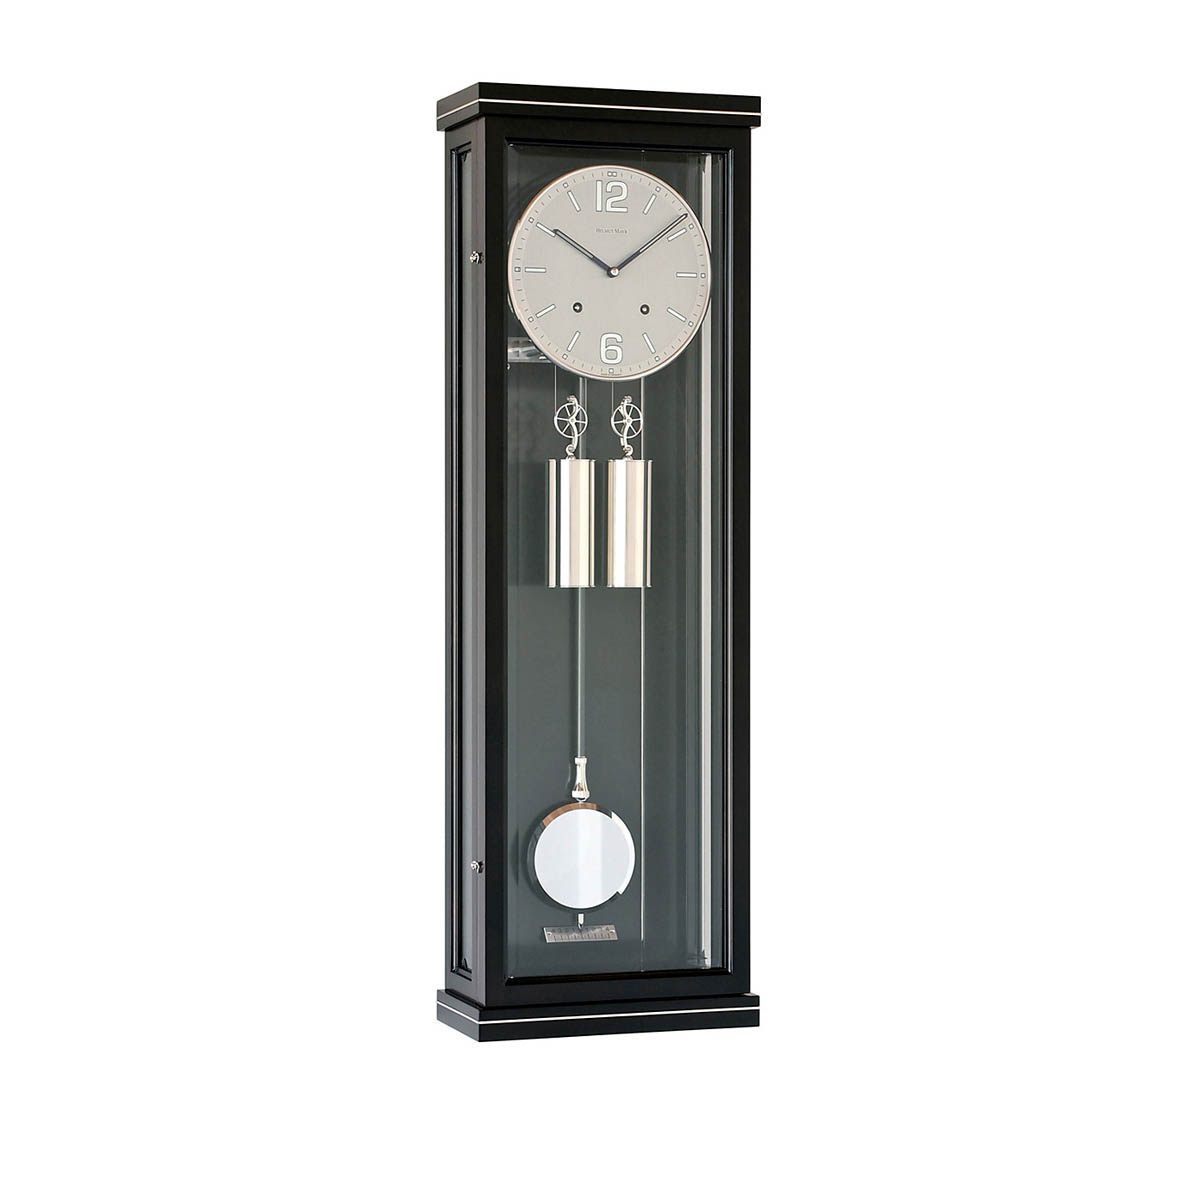 HERMITAG R1690  Regulator Wall Clock